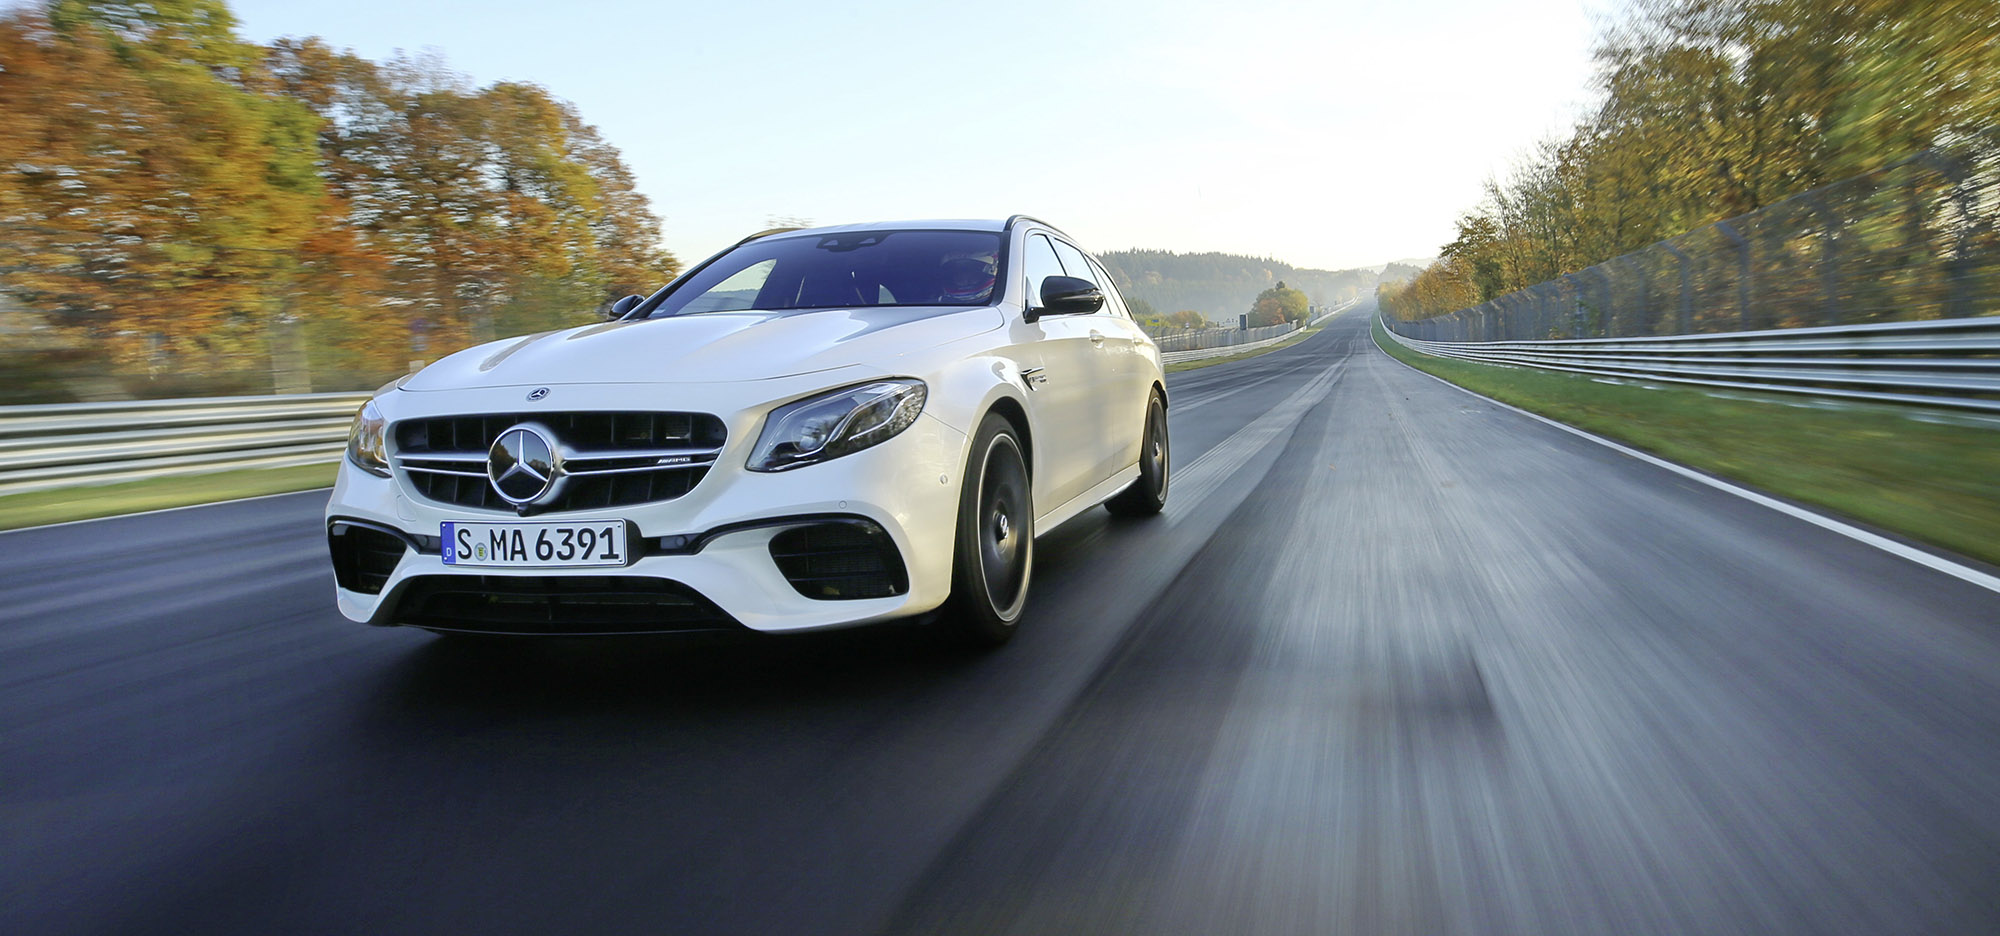 Mercedes-AMG E 63 S 4MATIC+ T-Modell auf der Nordschleife;Kraftstoffverbrauch kombiniert: 9,1 l/100 km; CO2-Emissionen kombiniert: 206 g/km* Mercedes-AMG E 63 S 4MATIC+ Estate on the Nordschleife Circuit;Fuel consumption, combined: 9.1 l/100 km, CO2 emissions, combined: 206 g/km*